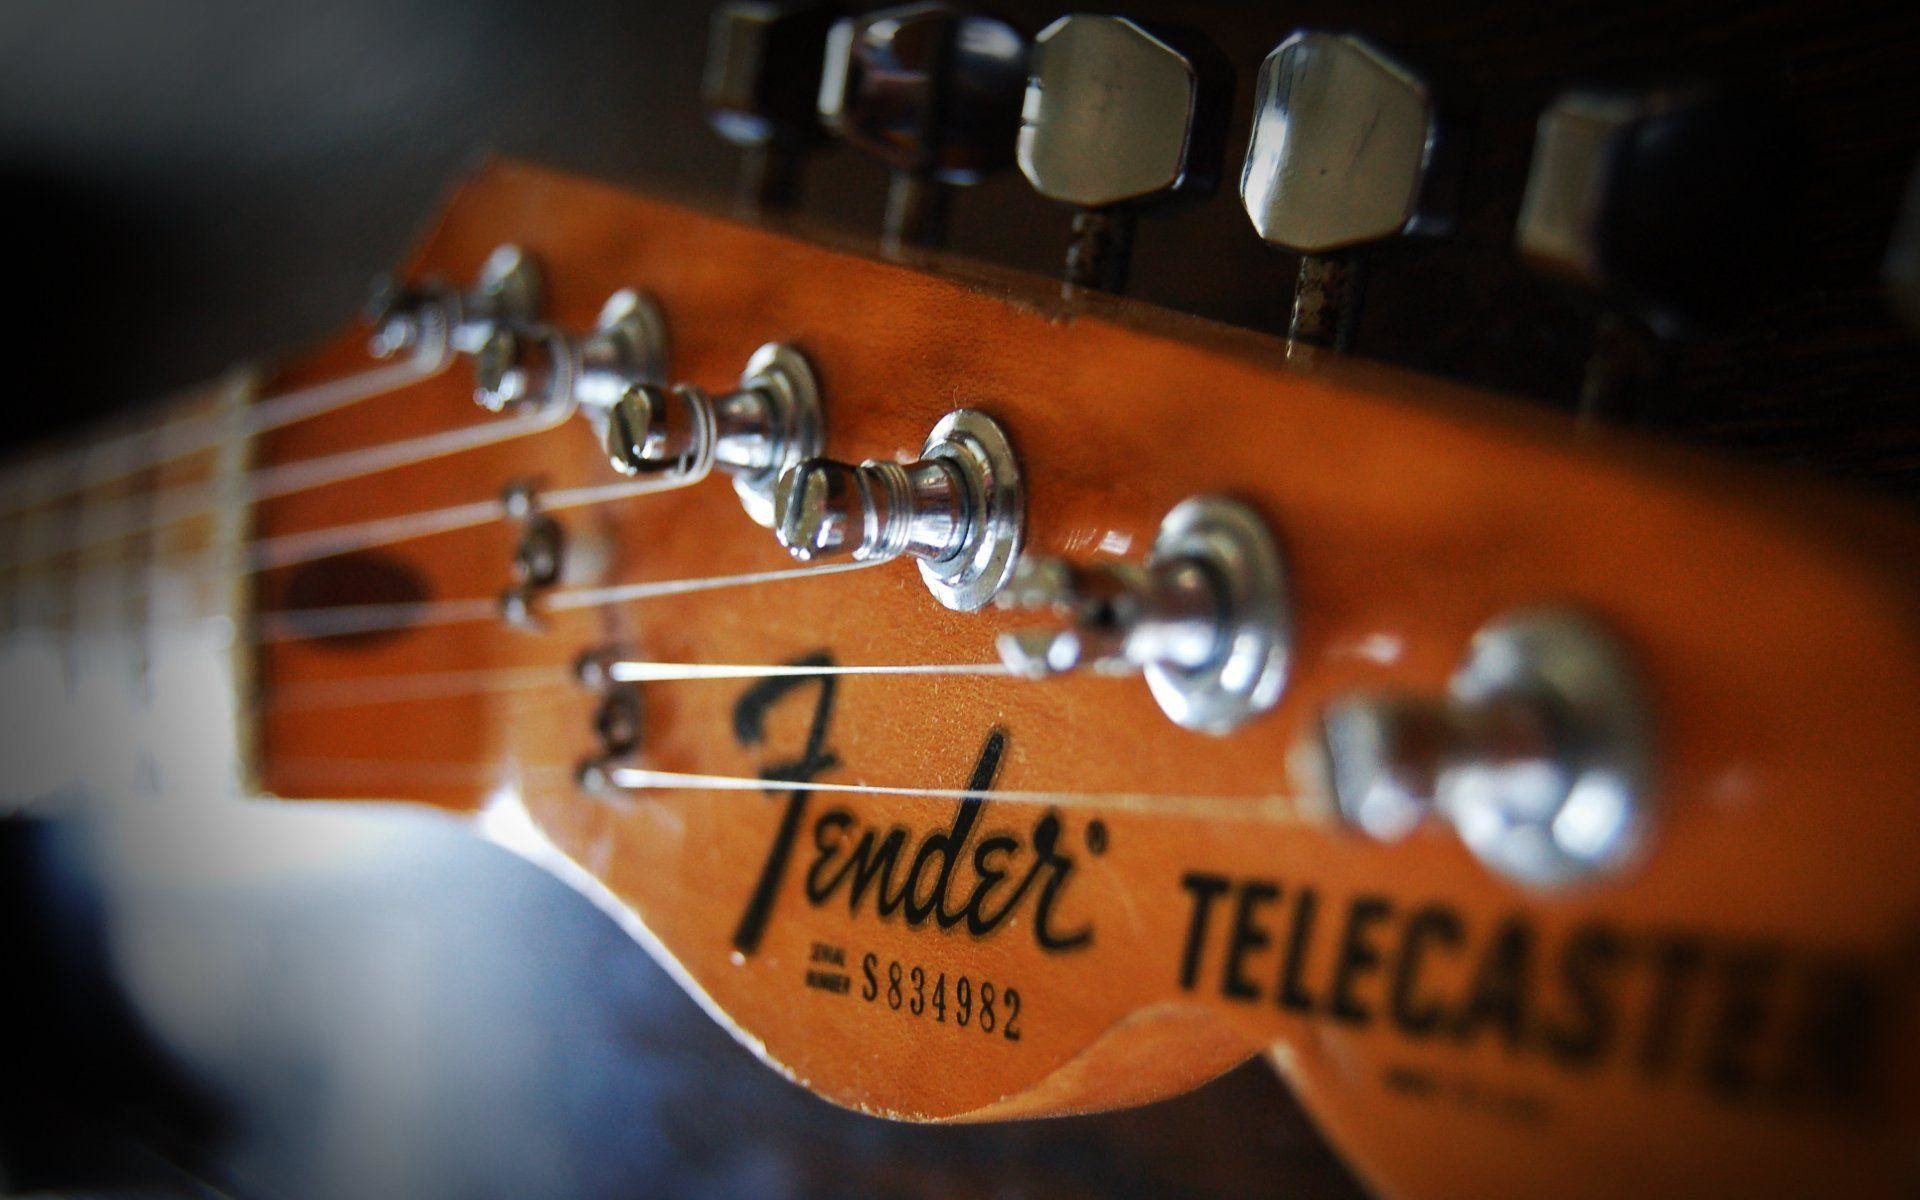 Fender Telecaster Wallpaper 46 Images